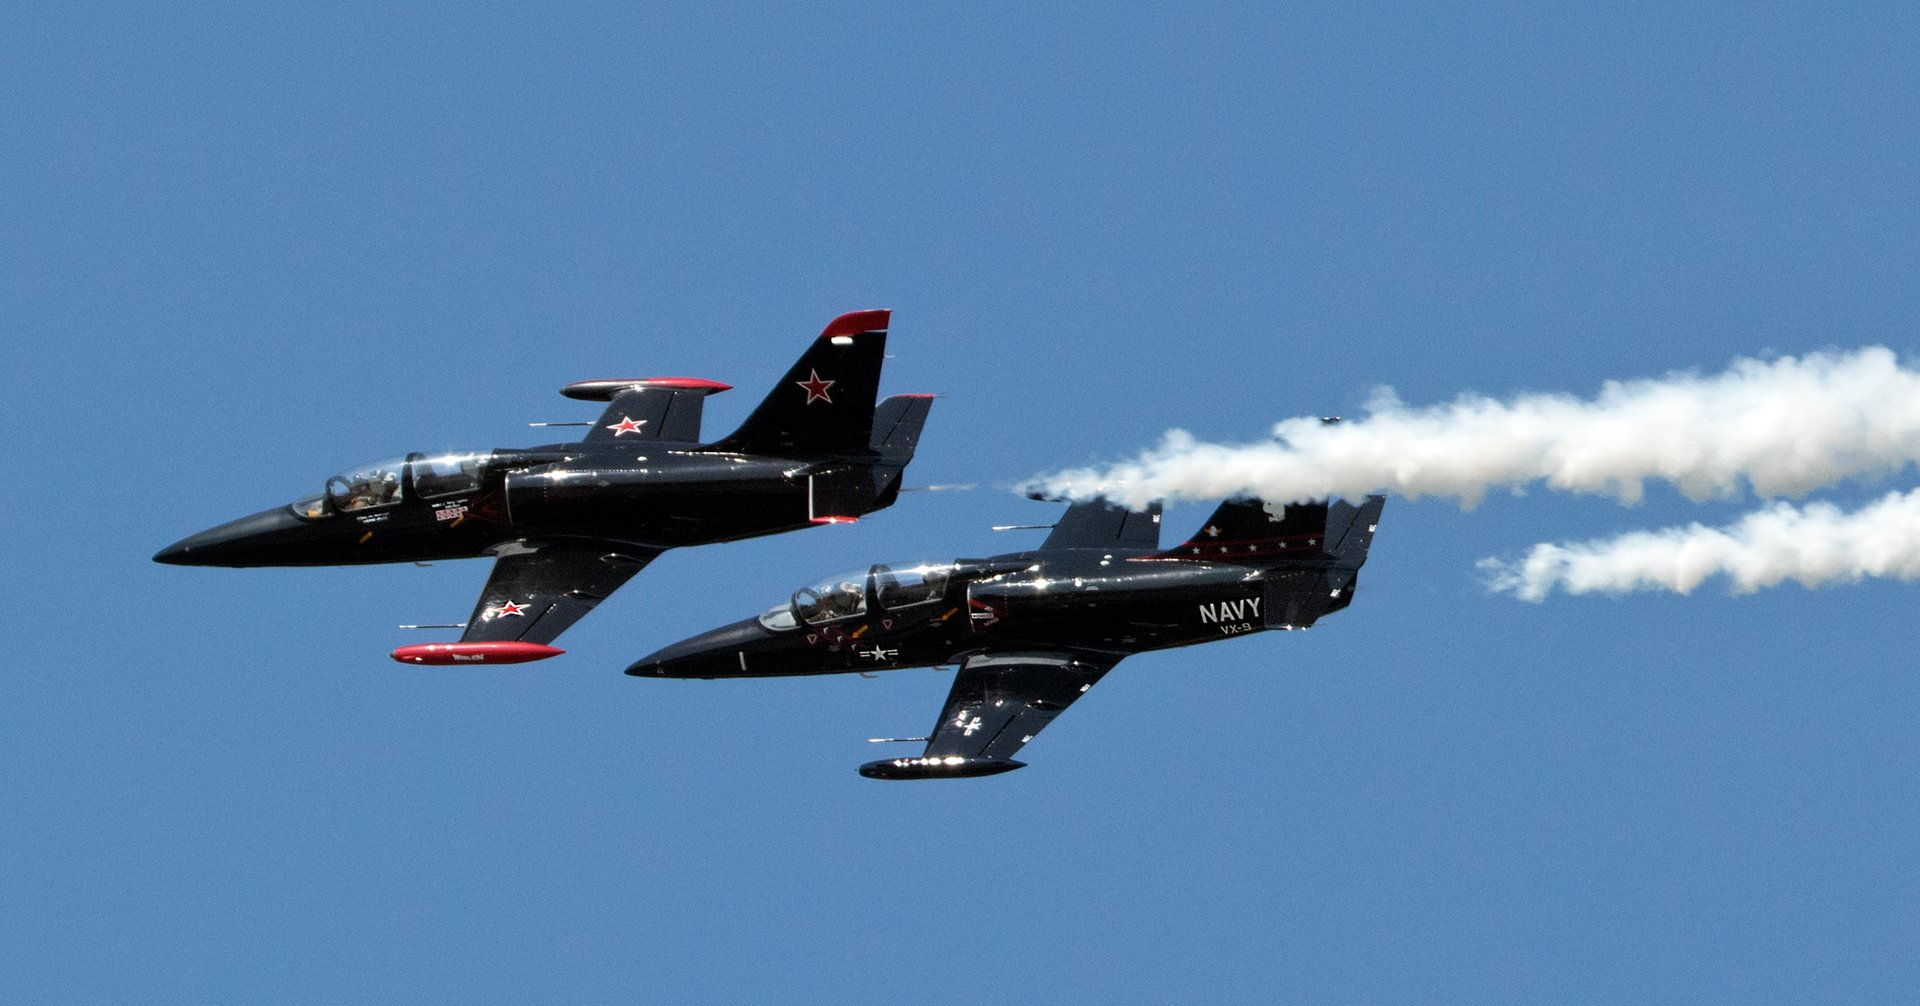 NAS Oceana Air Show in Virginia - Best Season 2020